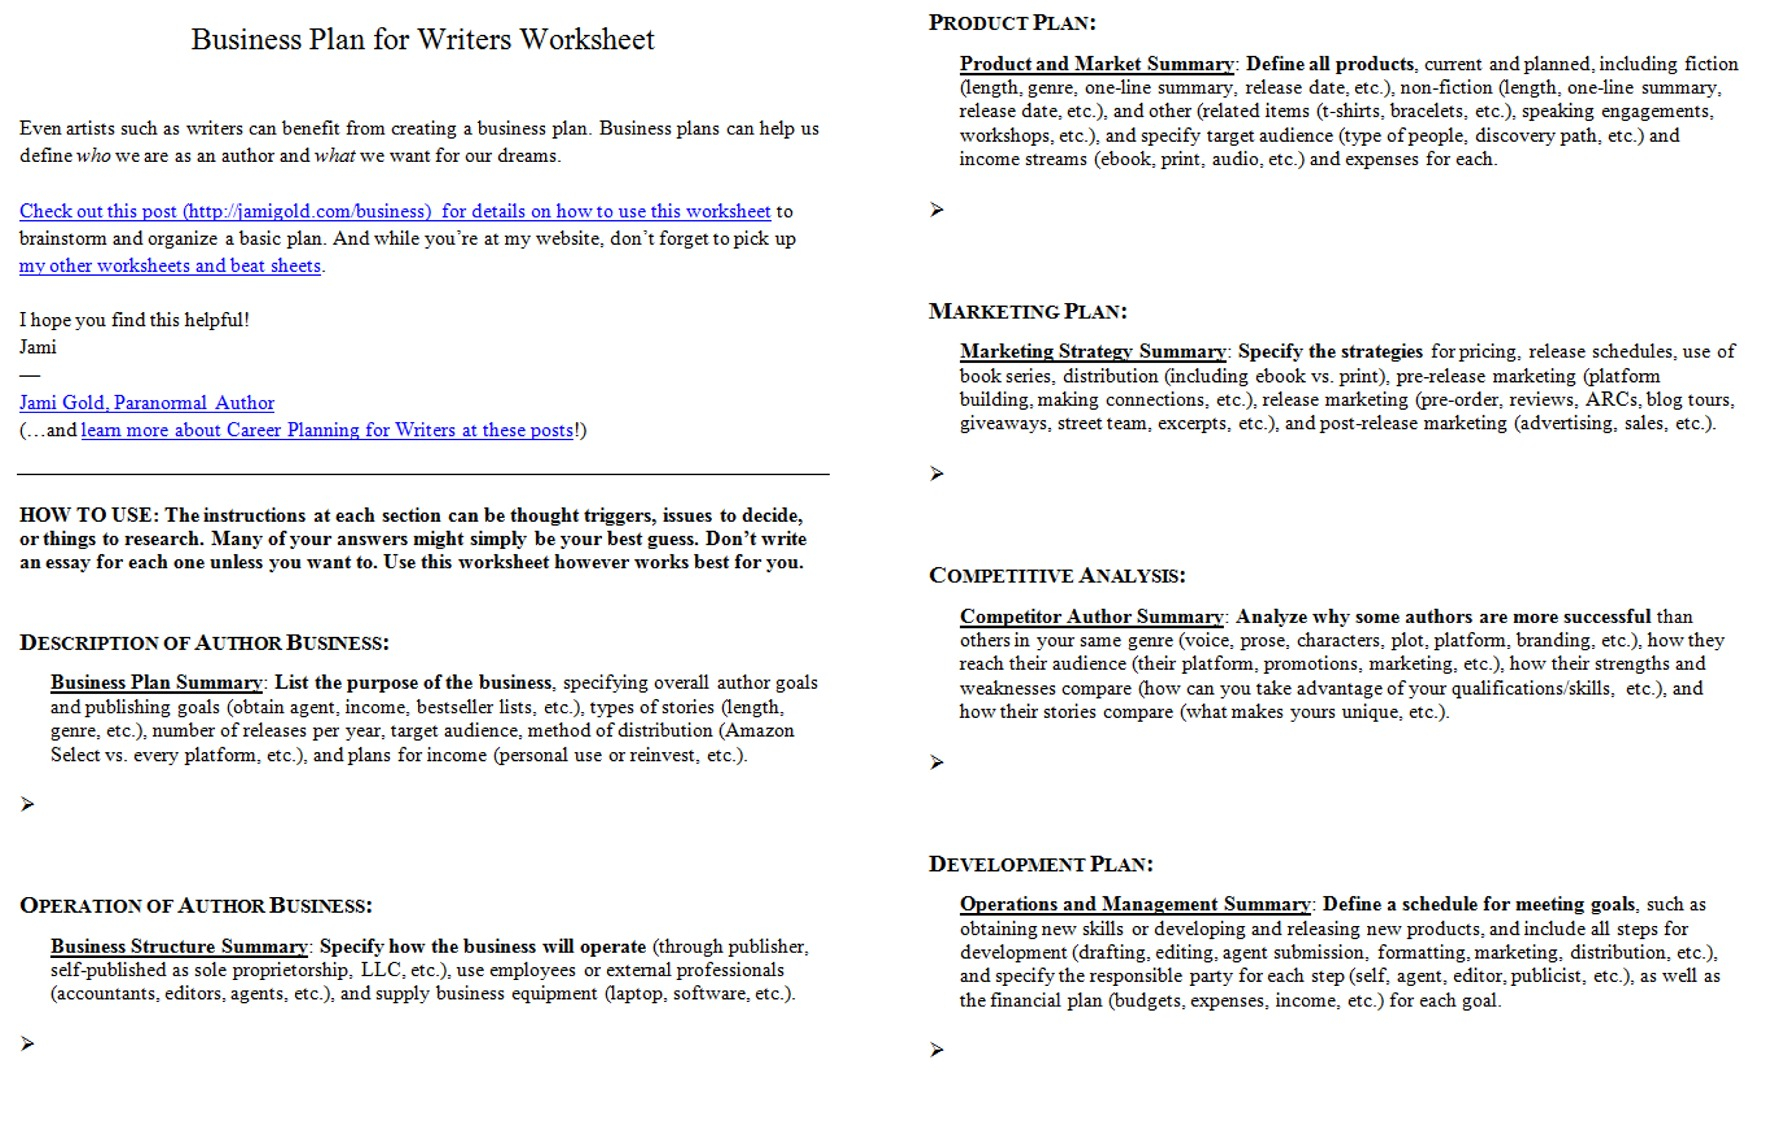 Weirdmailus  Pleasing Worksheets For Writers  Jami Gold Paranormal Author With Great Screen Shot Of Both Pages Of The Business Plan For Writers Worksheet With Agreeable Climograph Worksheet Also First Grade Printable Worksheets In Addition  Step Equations Worksheet And How Does A Monthly Budget Worksheet Help You As Well As Money Worksheets For Kindergarten Additionally Common And Proper Noun Worksheets From Jamigoldcom With Weirdmailus  Great Worksheets For Writers  Jami Gold Paranormal Author With Agreeable Screen Shot Of Both Pages Of The Business Plan For Writers Worksheet And Pleasing Climograph Worksheet Also First Grade Printable Worksheets In Addition  Step Equations Worksheet From Jamigoldcom